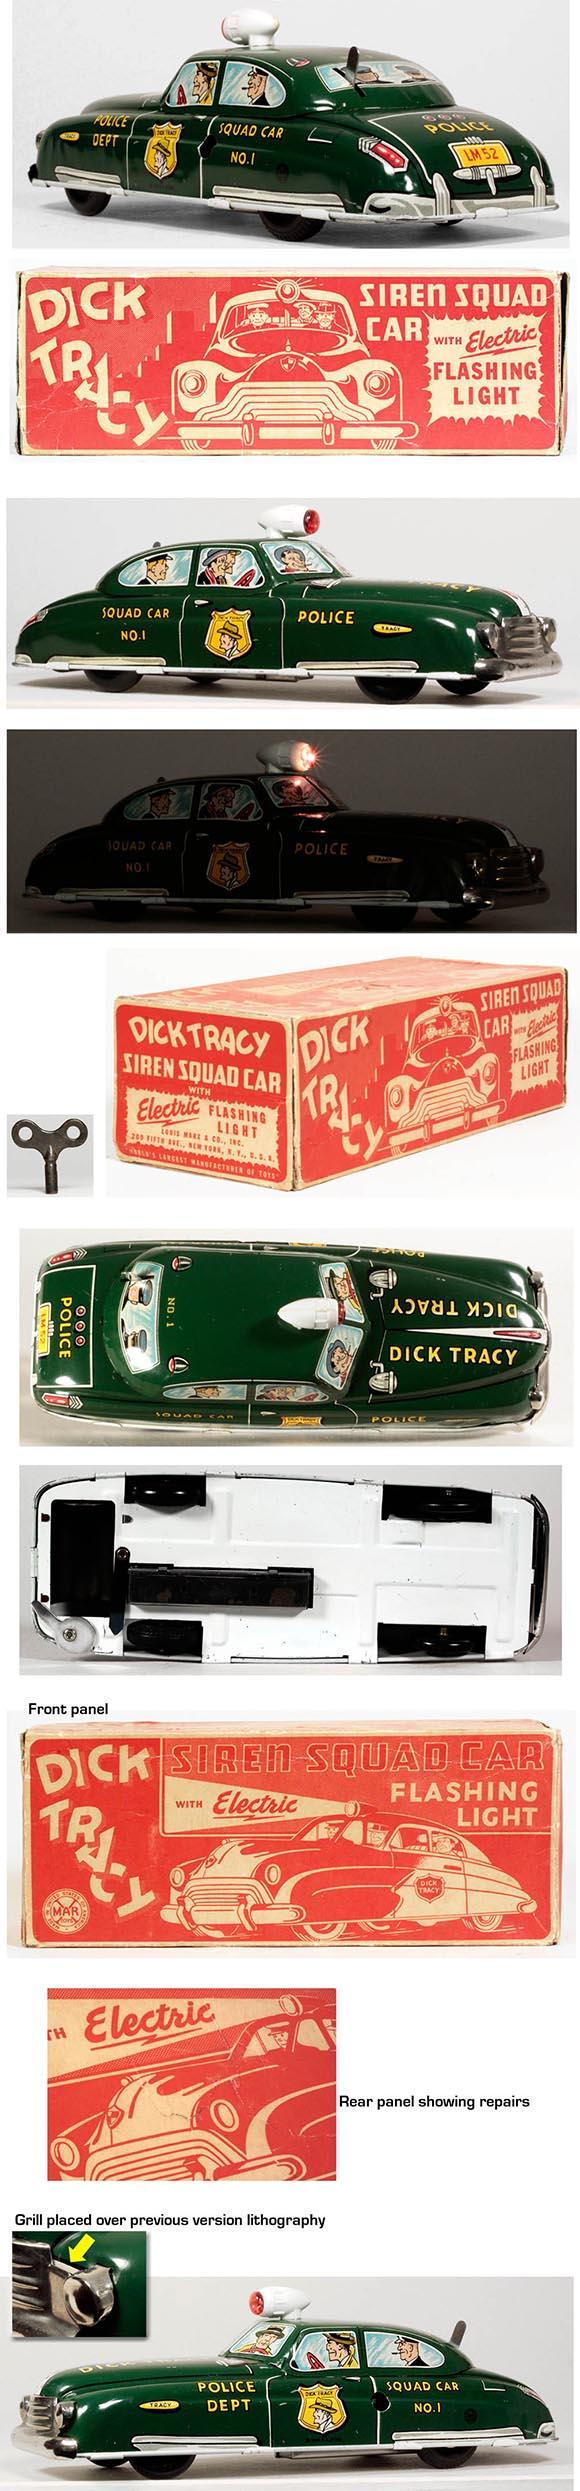 1949 Marx Dick Tracy Siren Squad Car w/Light in Original Box